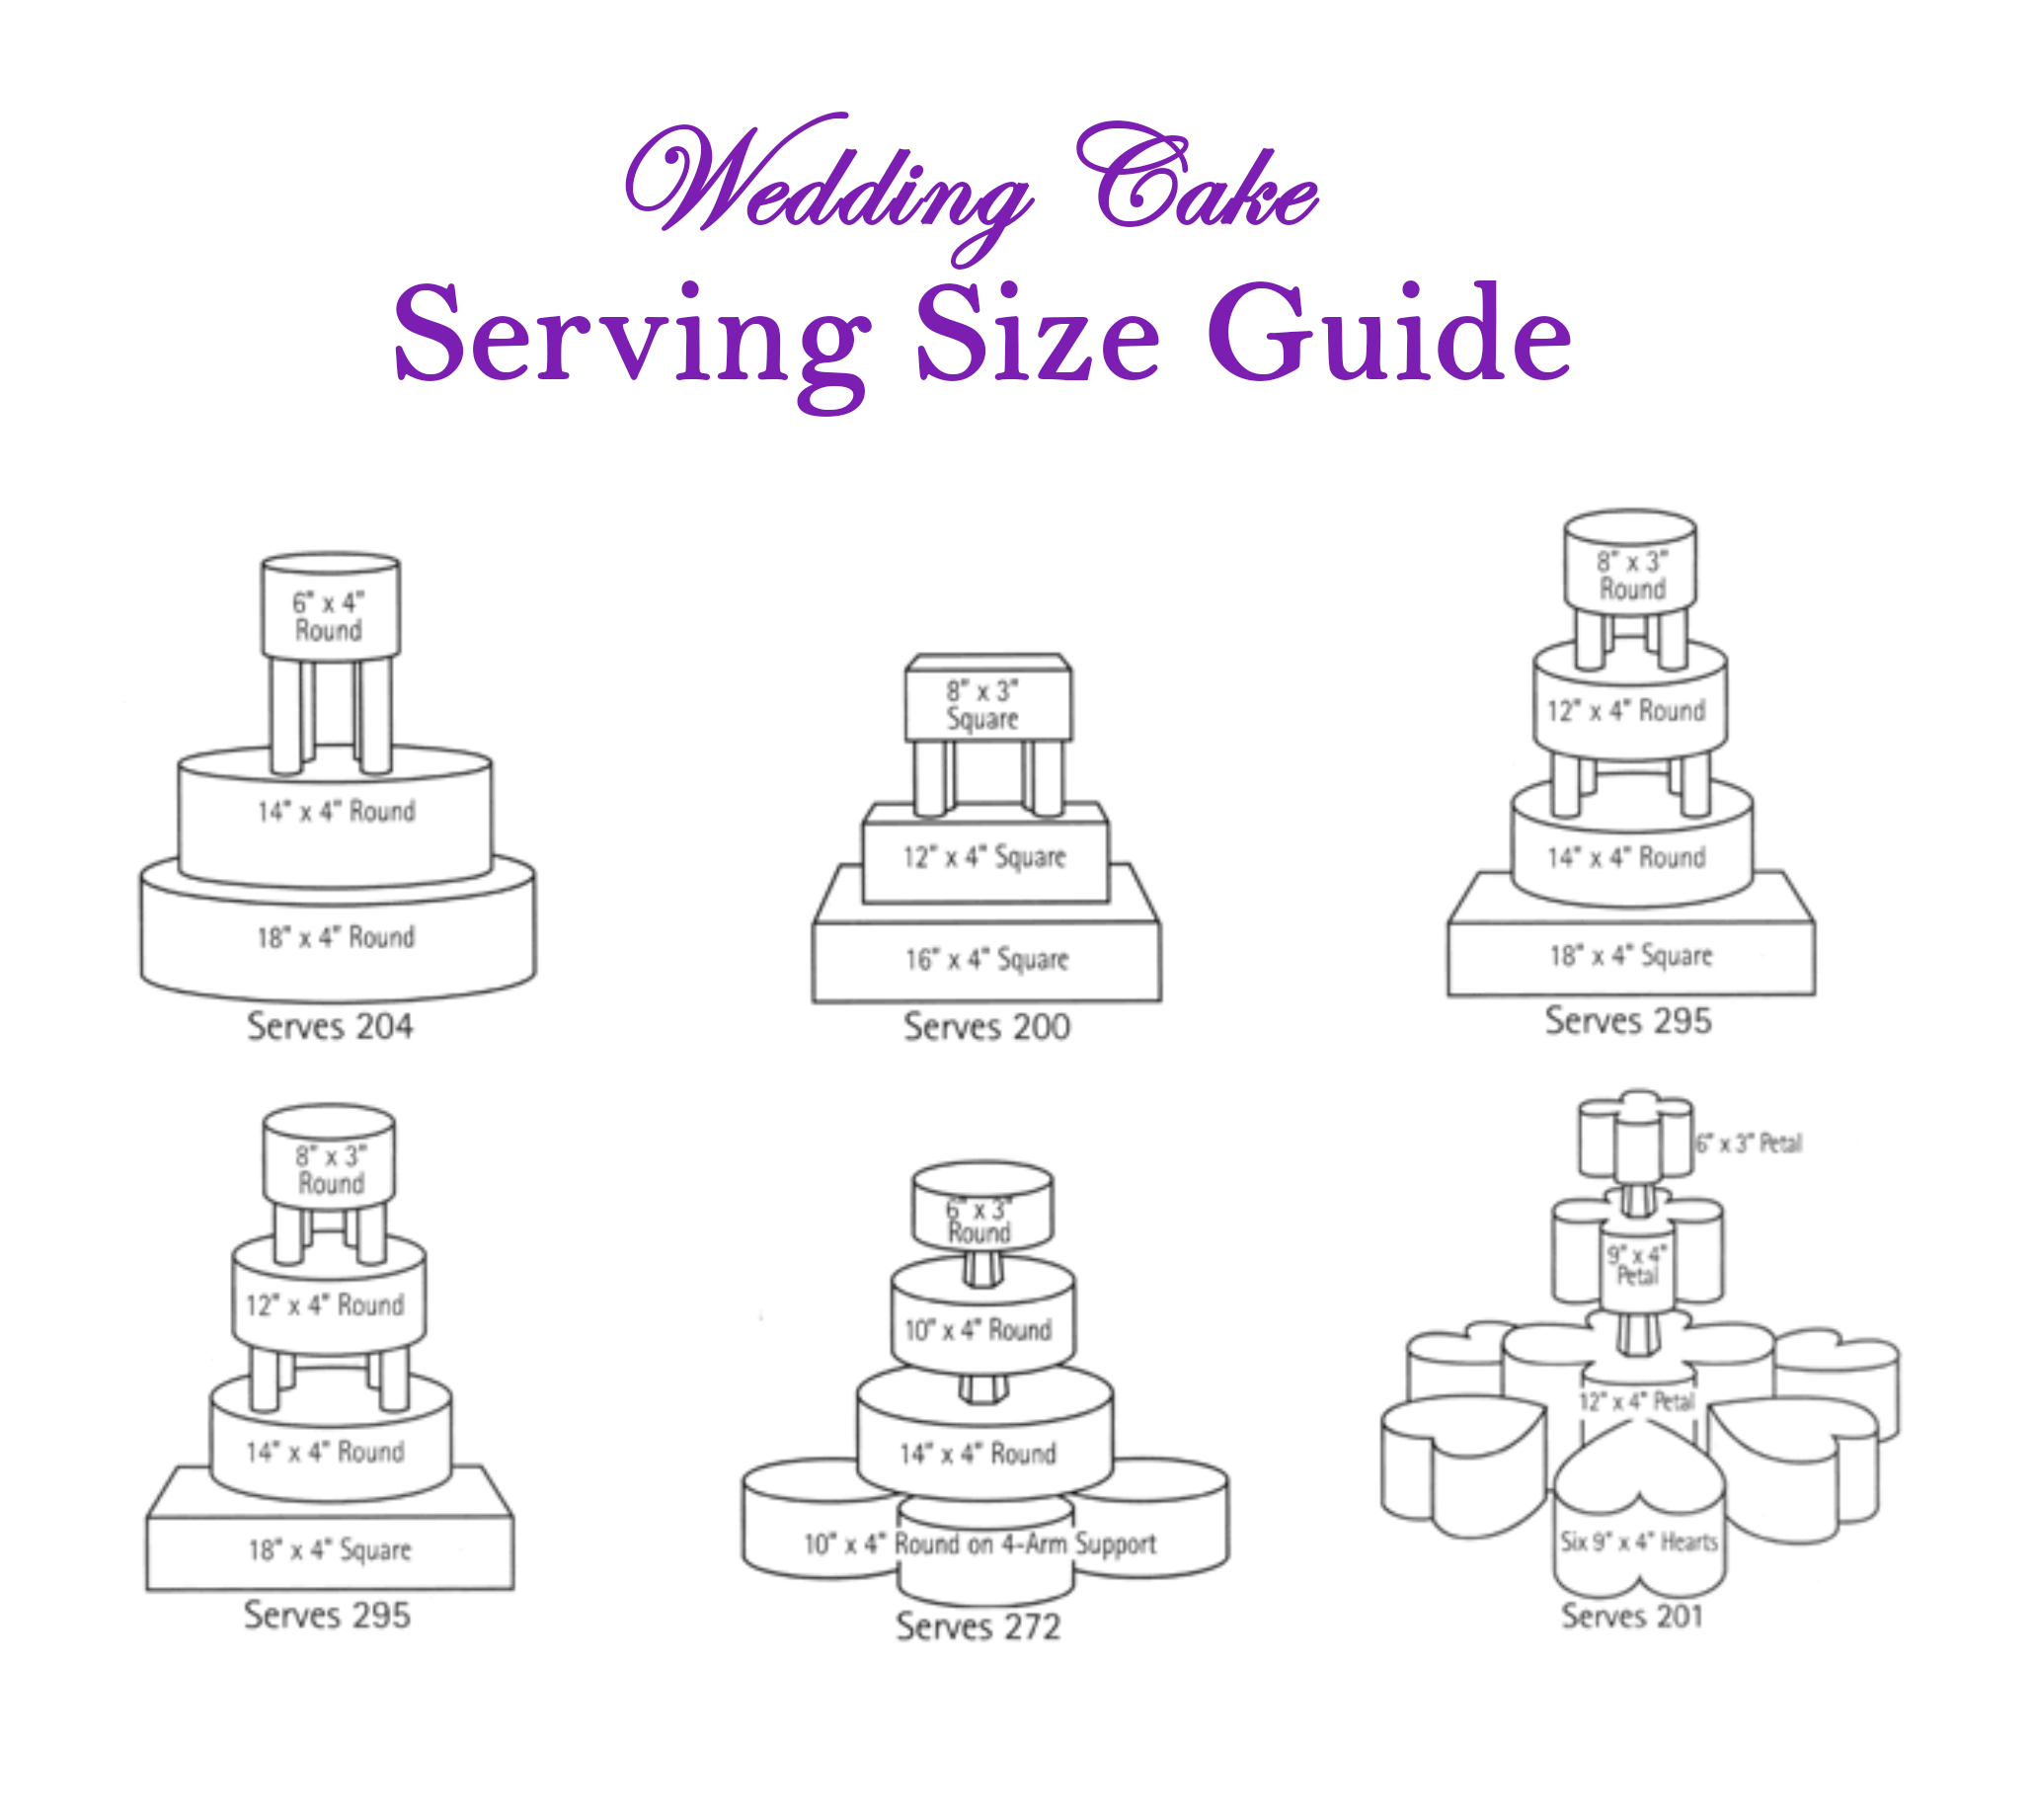 Cakes To Serve 200 To 300 Guests Cake Sizes And Servings Wedding Cake Servings Cake Sizes